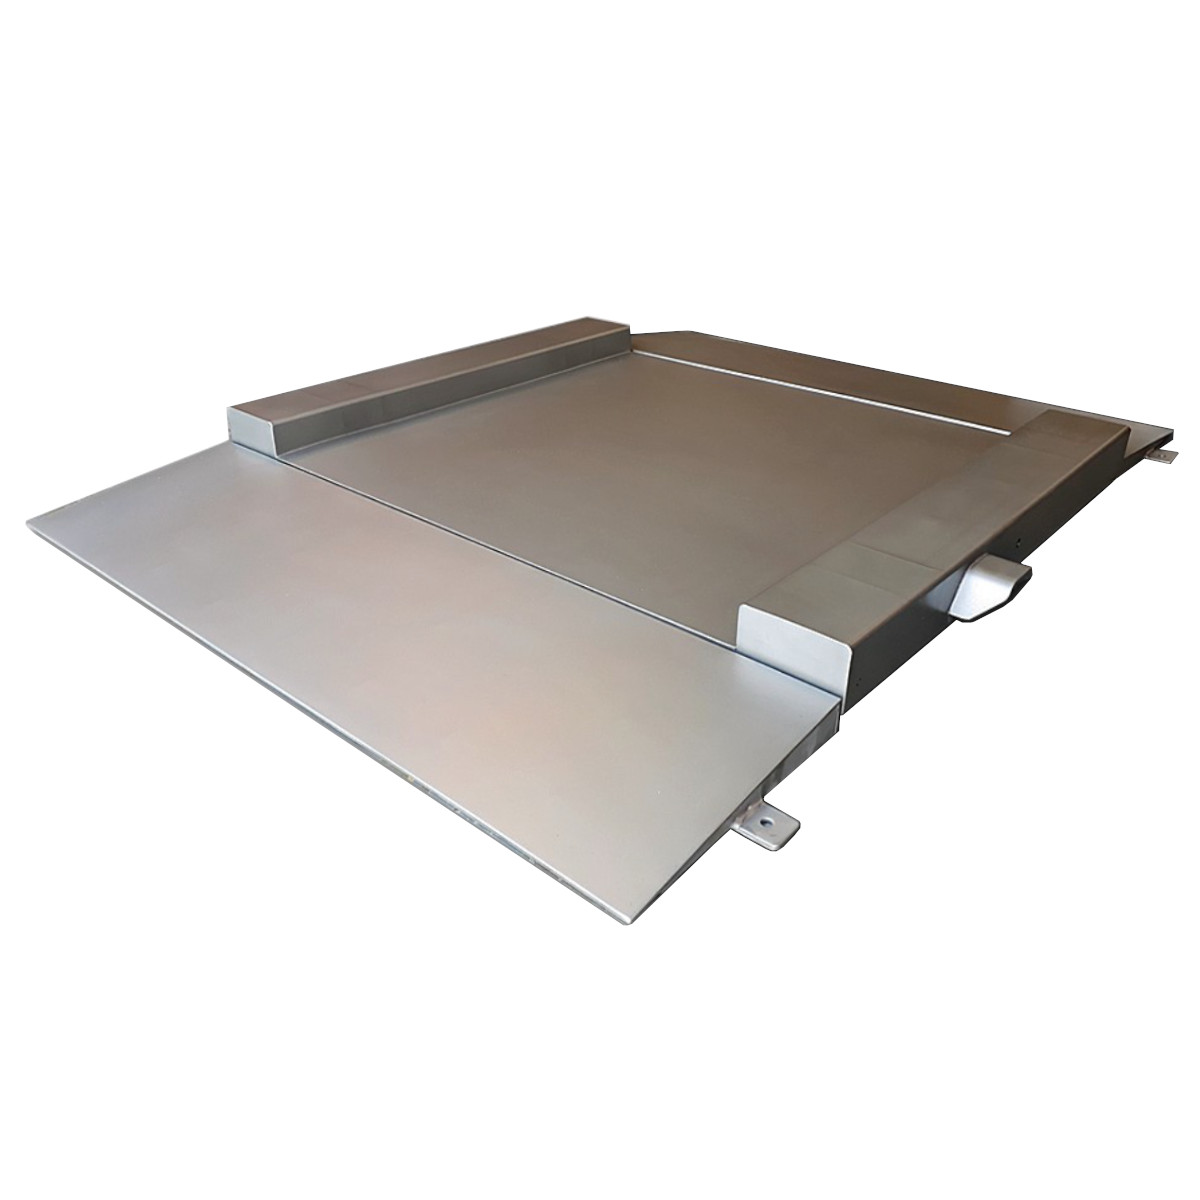 VALUEWEIGH VWDTS STAINLESS DRIVE-THRU PLATFORM